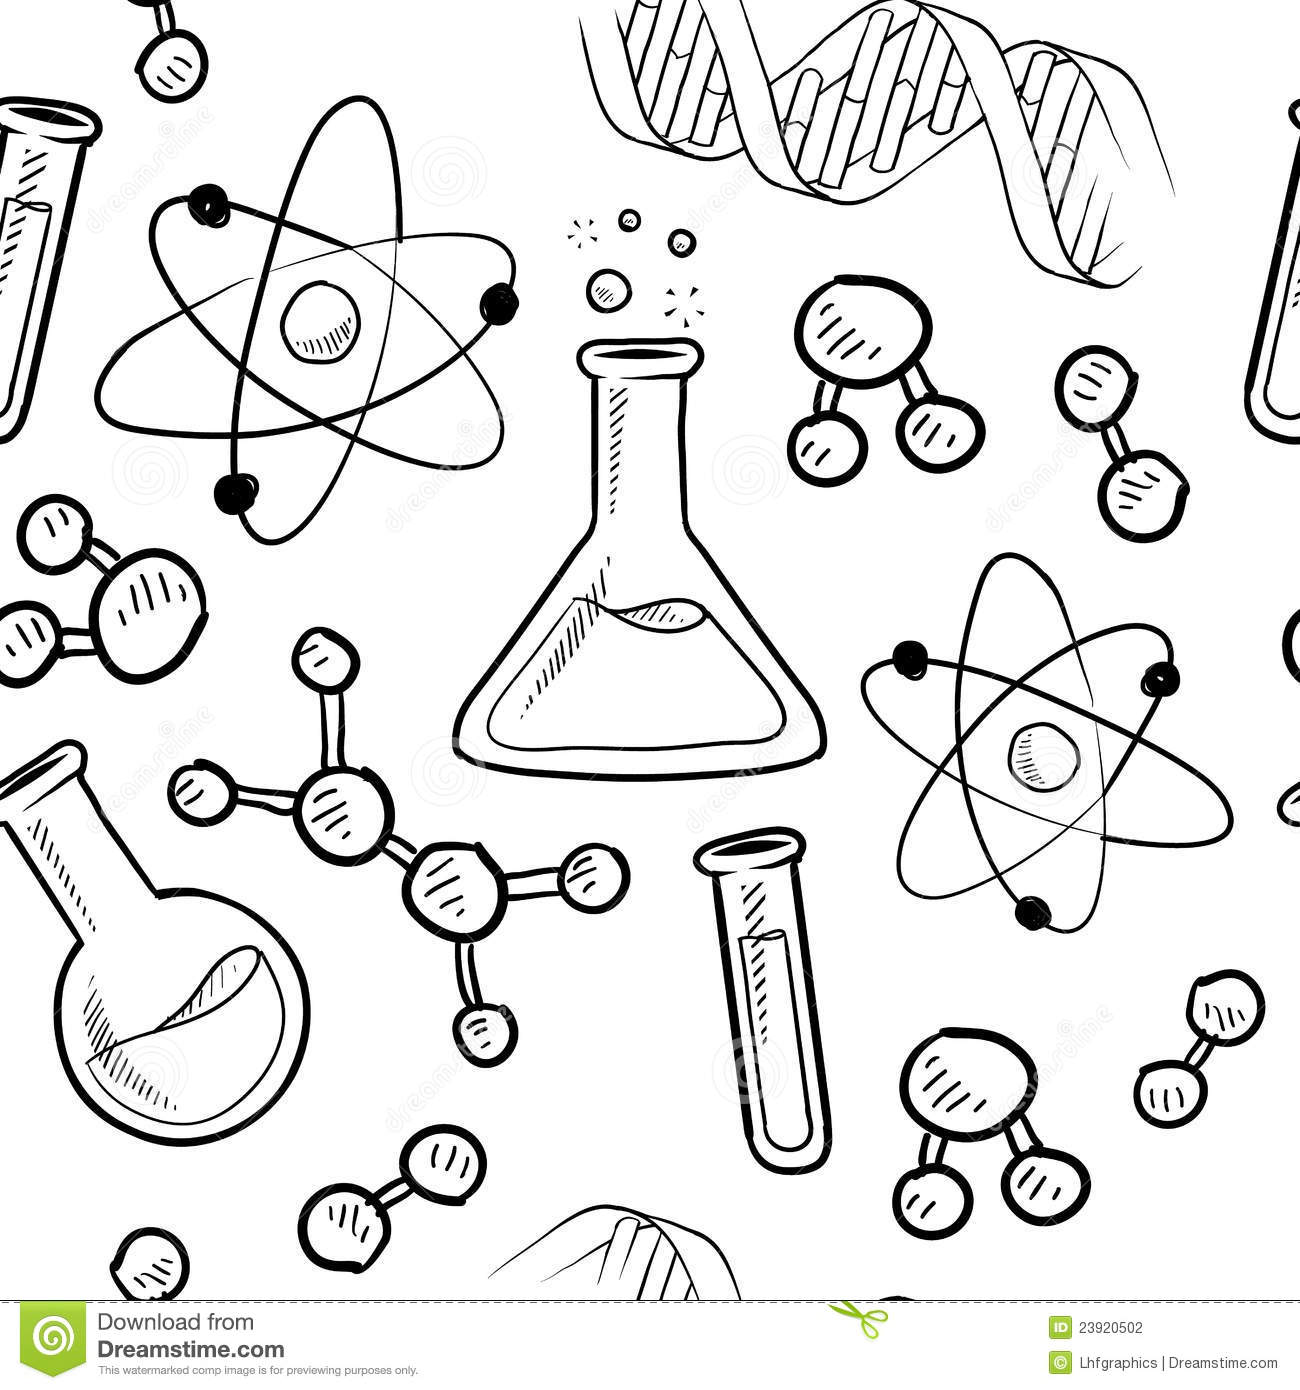 Stock Photography Seamless Science Lab Background Image23920502 as well Dessin Chien A Imprimer 7762 as well Science Experiment Coloringpage further Zentangle together with Adult. on lab coloring pages for adults